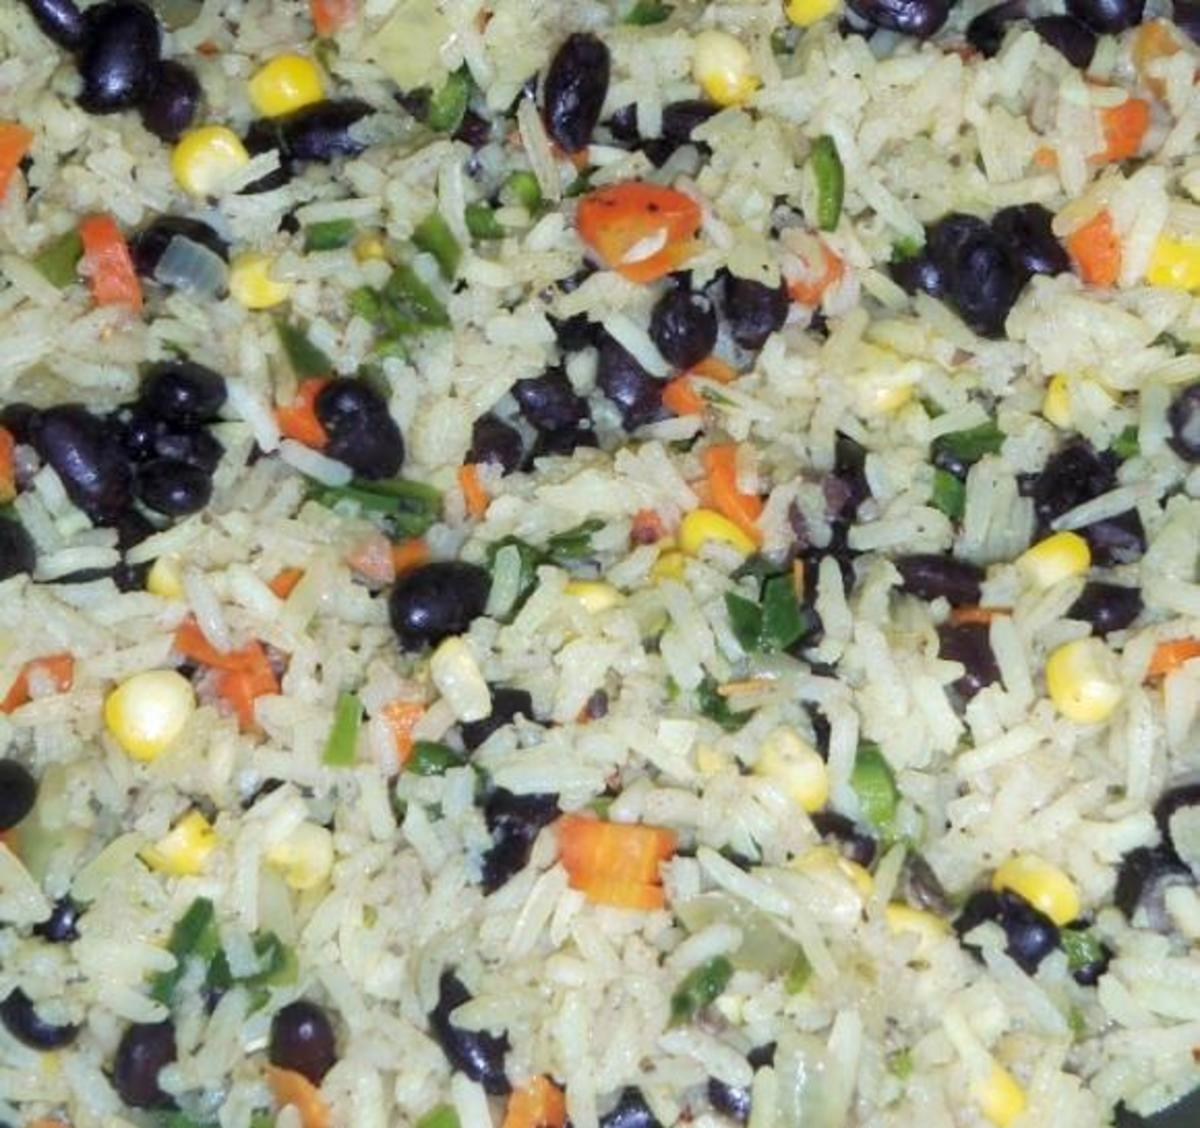 Rice and beans can be both a main dish or extra toppings for tacos.